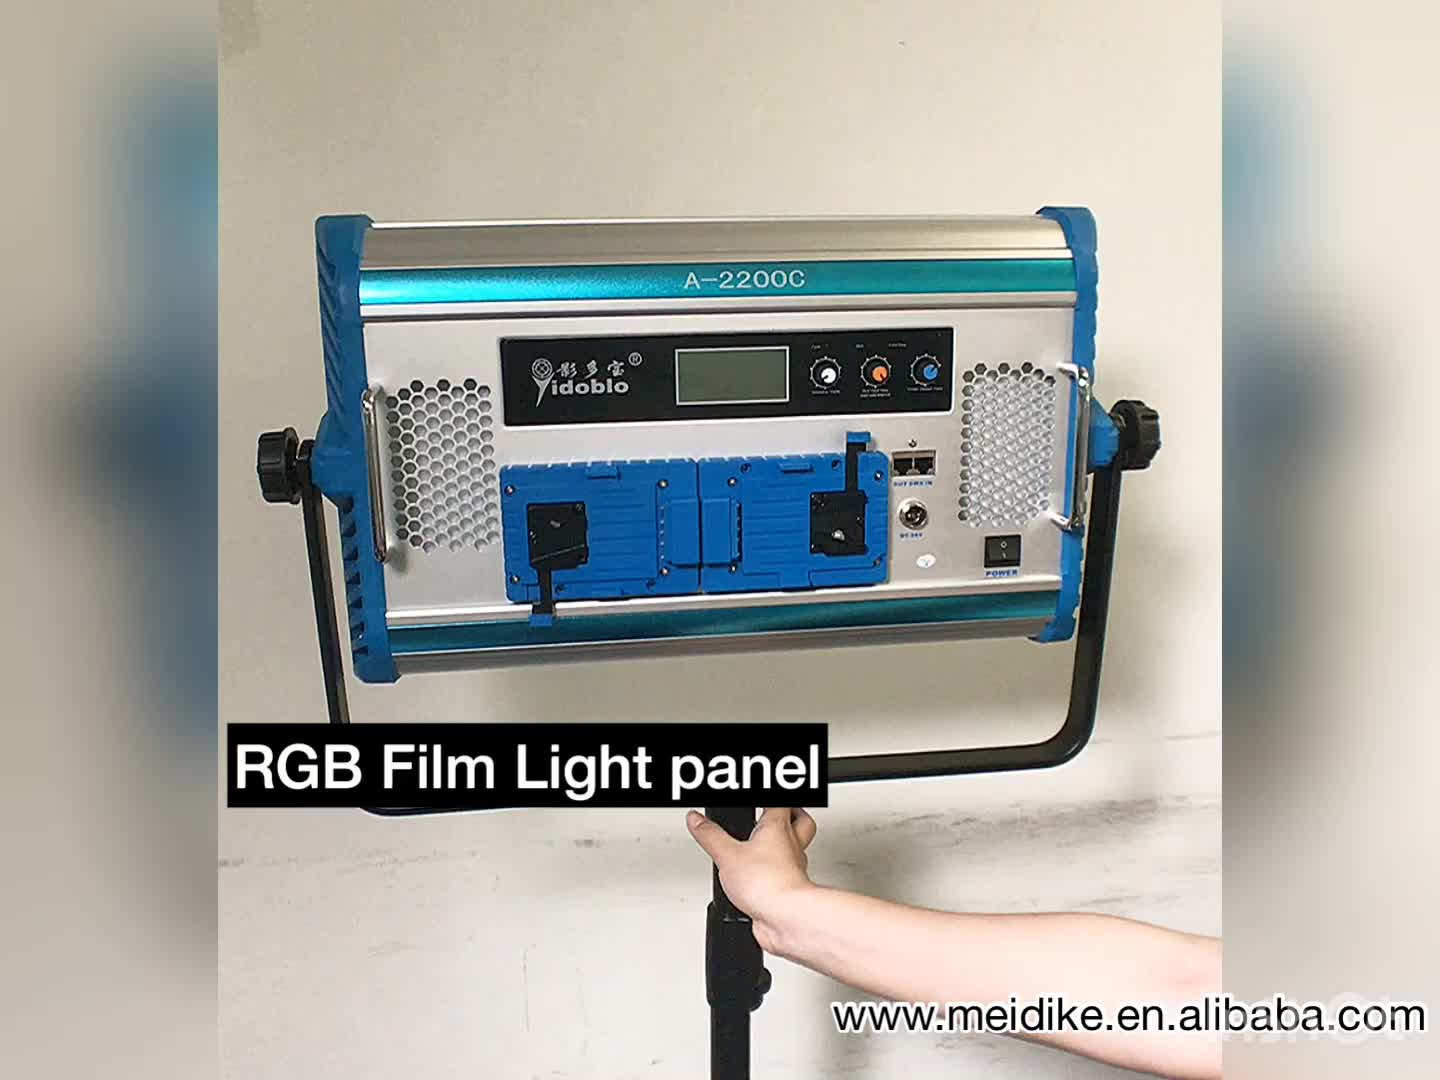 Foshan yidoblo A2200C 140 W RGB + W LED LED panel light met Lcd-scherm Telefoon App Afstandsbediening als arri video cinema apparatuur